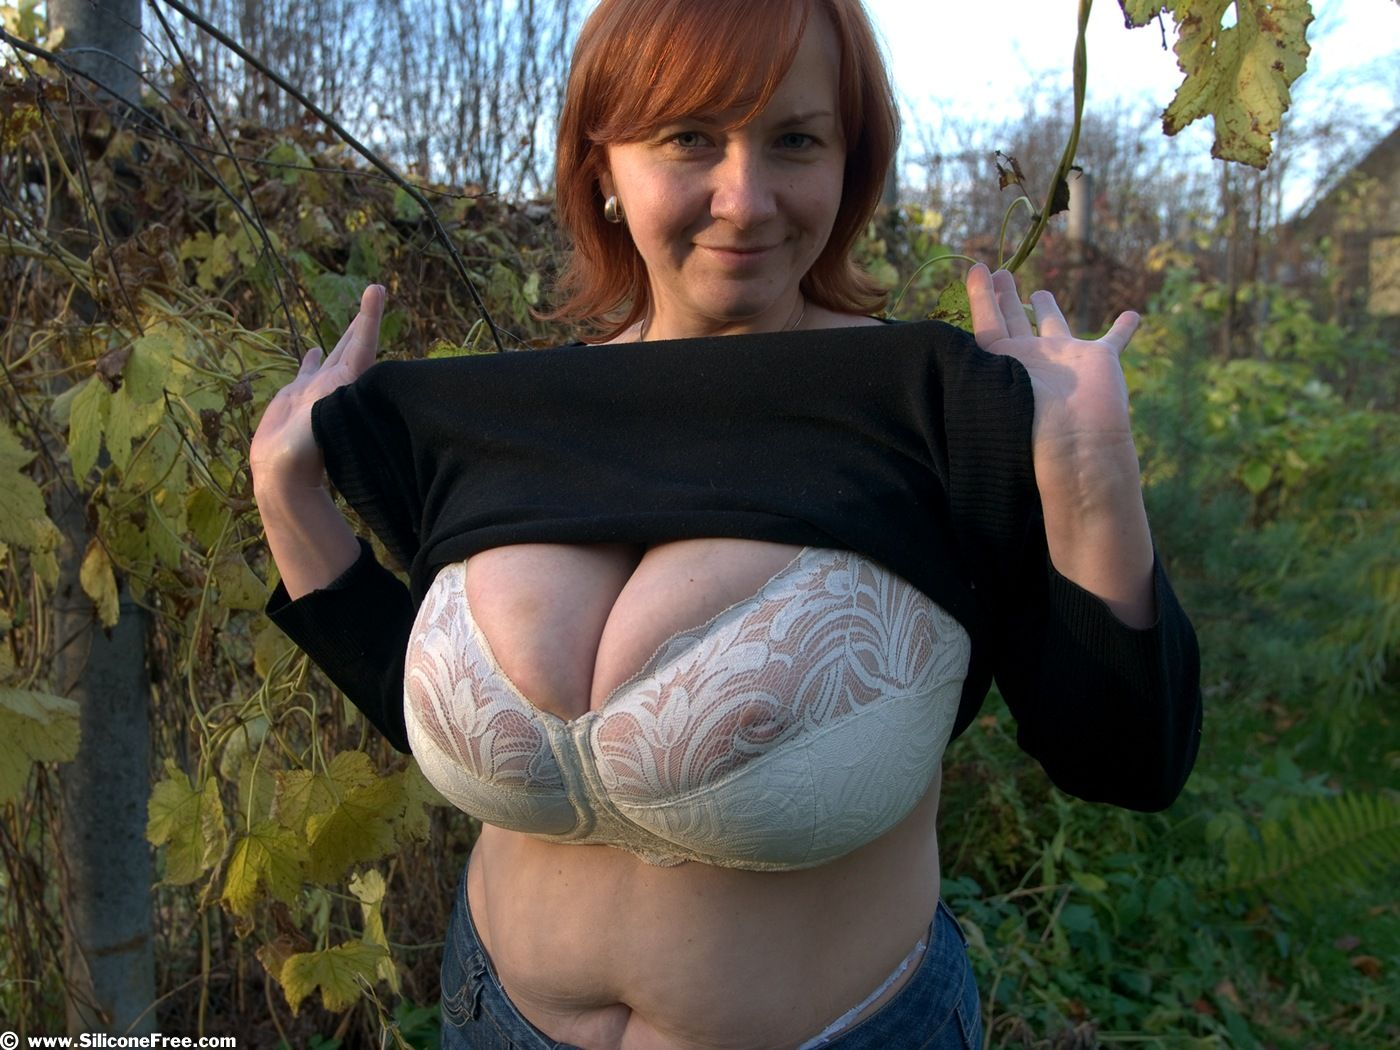 Freckled Hairy Redhead Nude